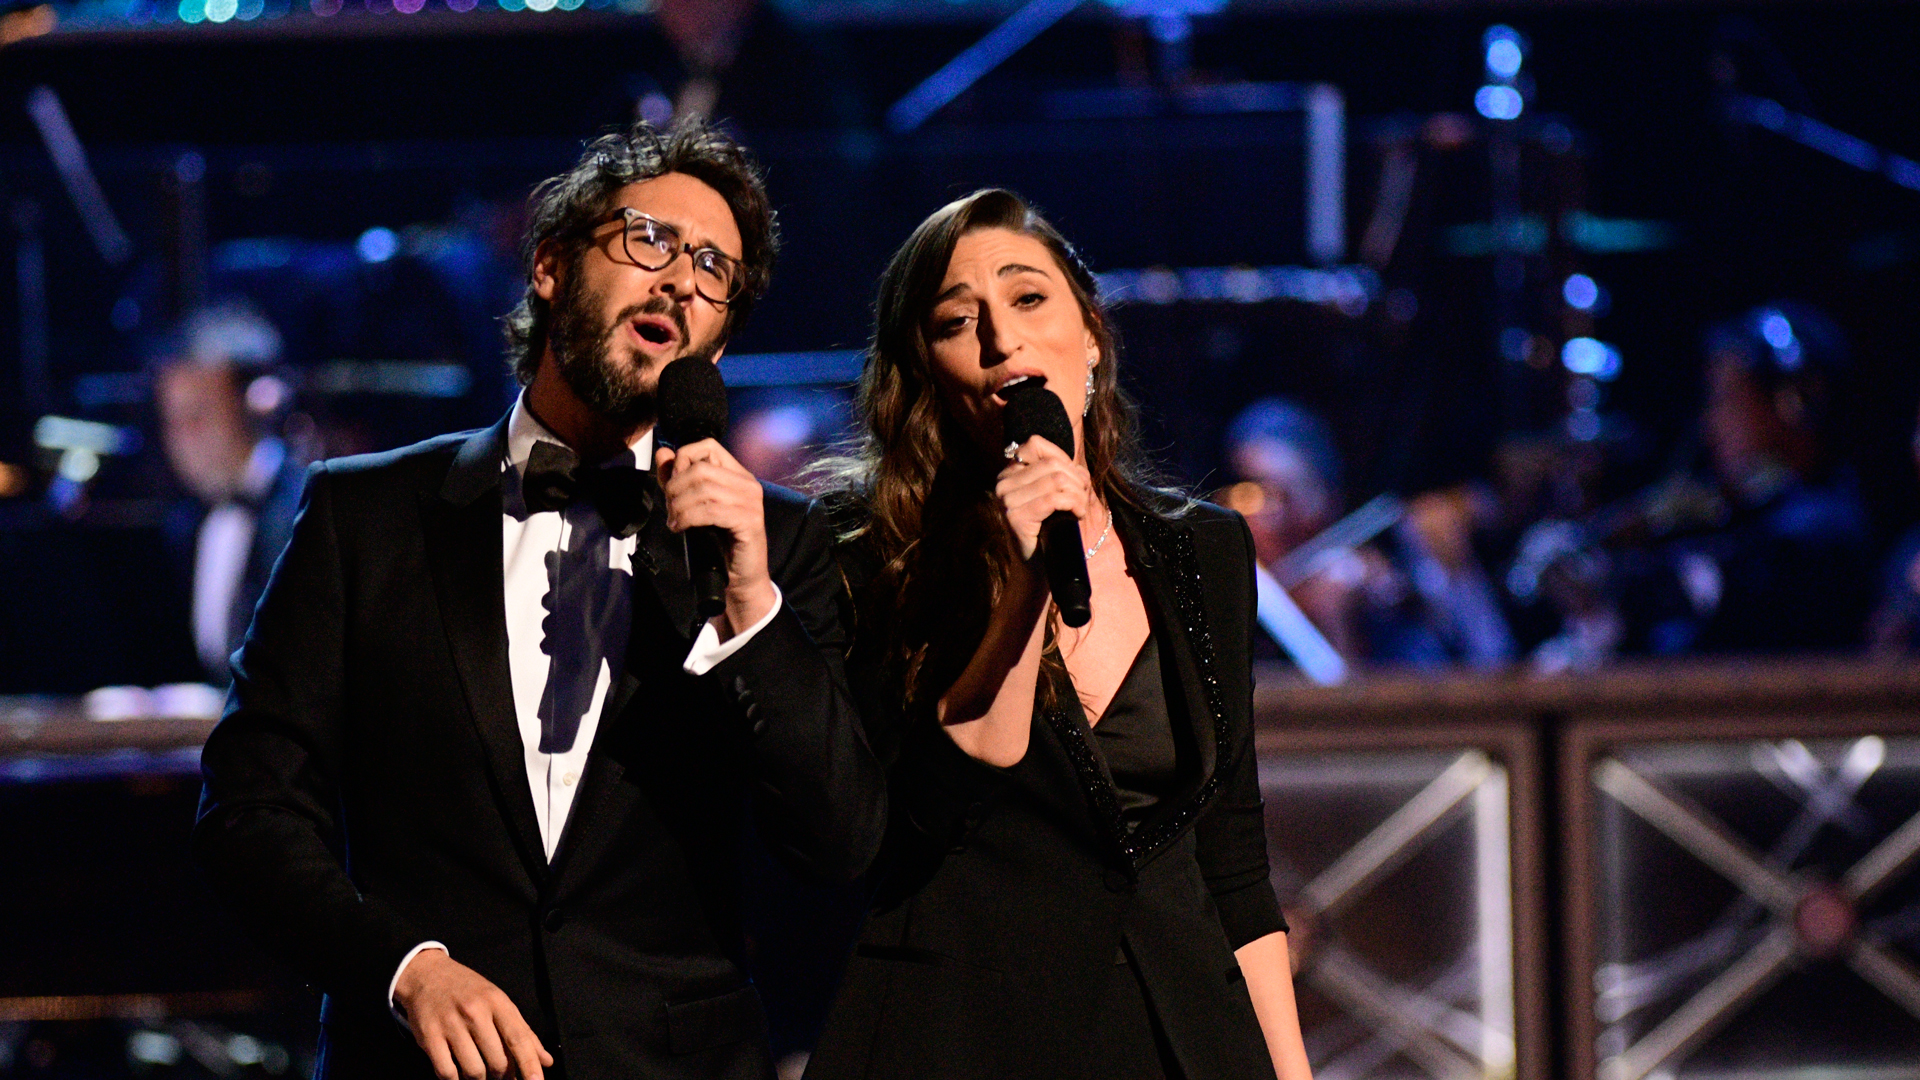 Josh Groban and Sara Bareilles perform the opening number at the 2018 Tony Awards.